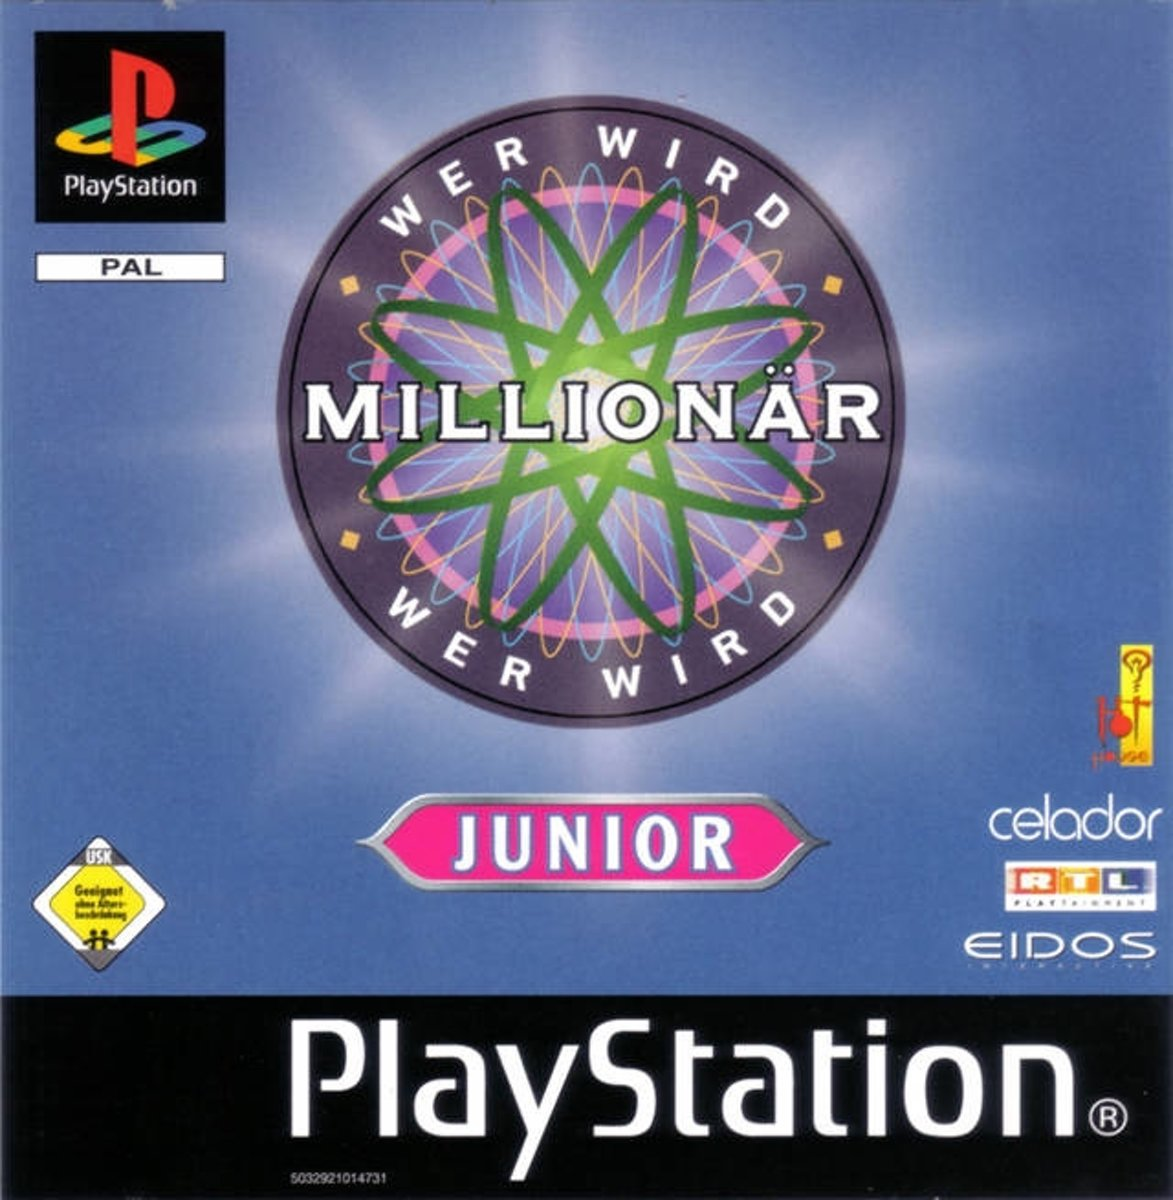 Who Wants to be a millionaire Junioir